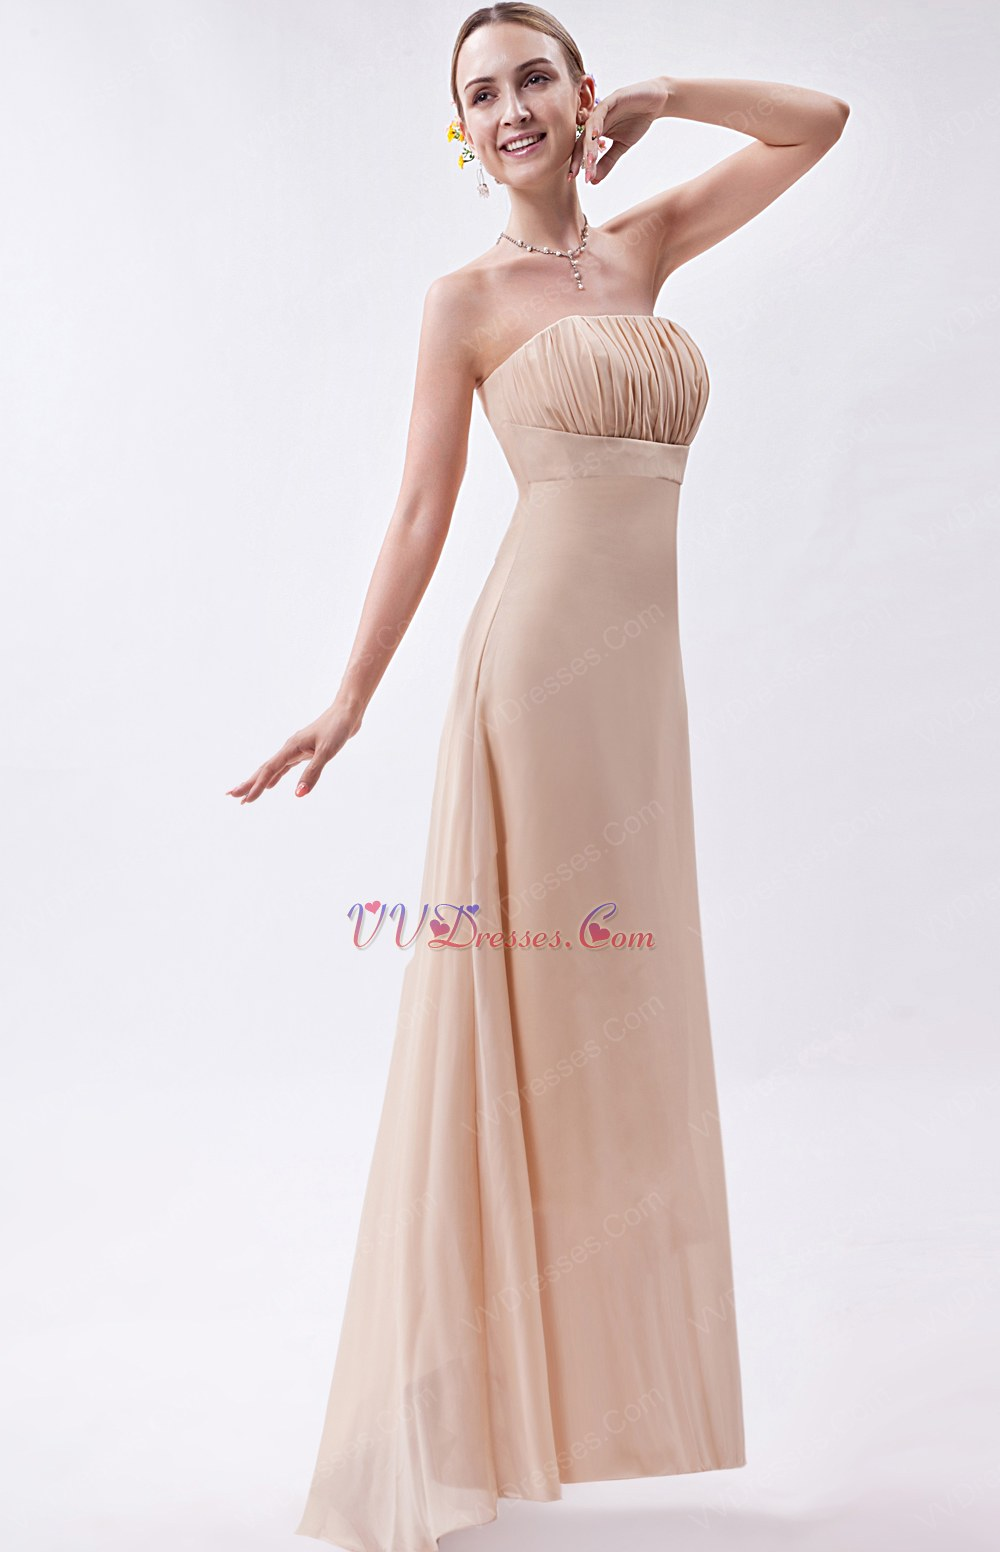 Champagne colored bridesmaid dress gown and dress gallery champagne colored bridesmaid dress hd gallery ombrellifo Image collections